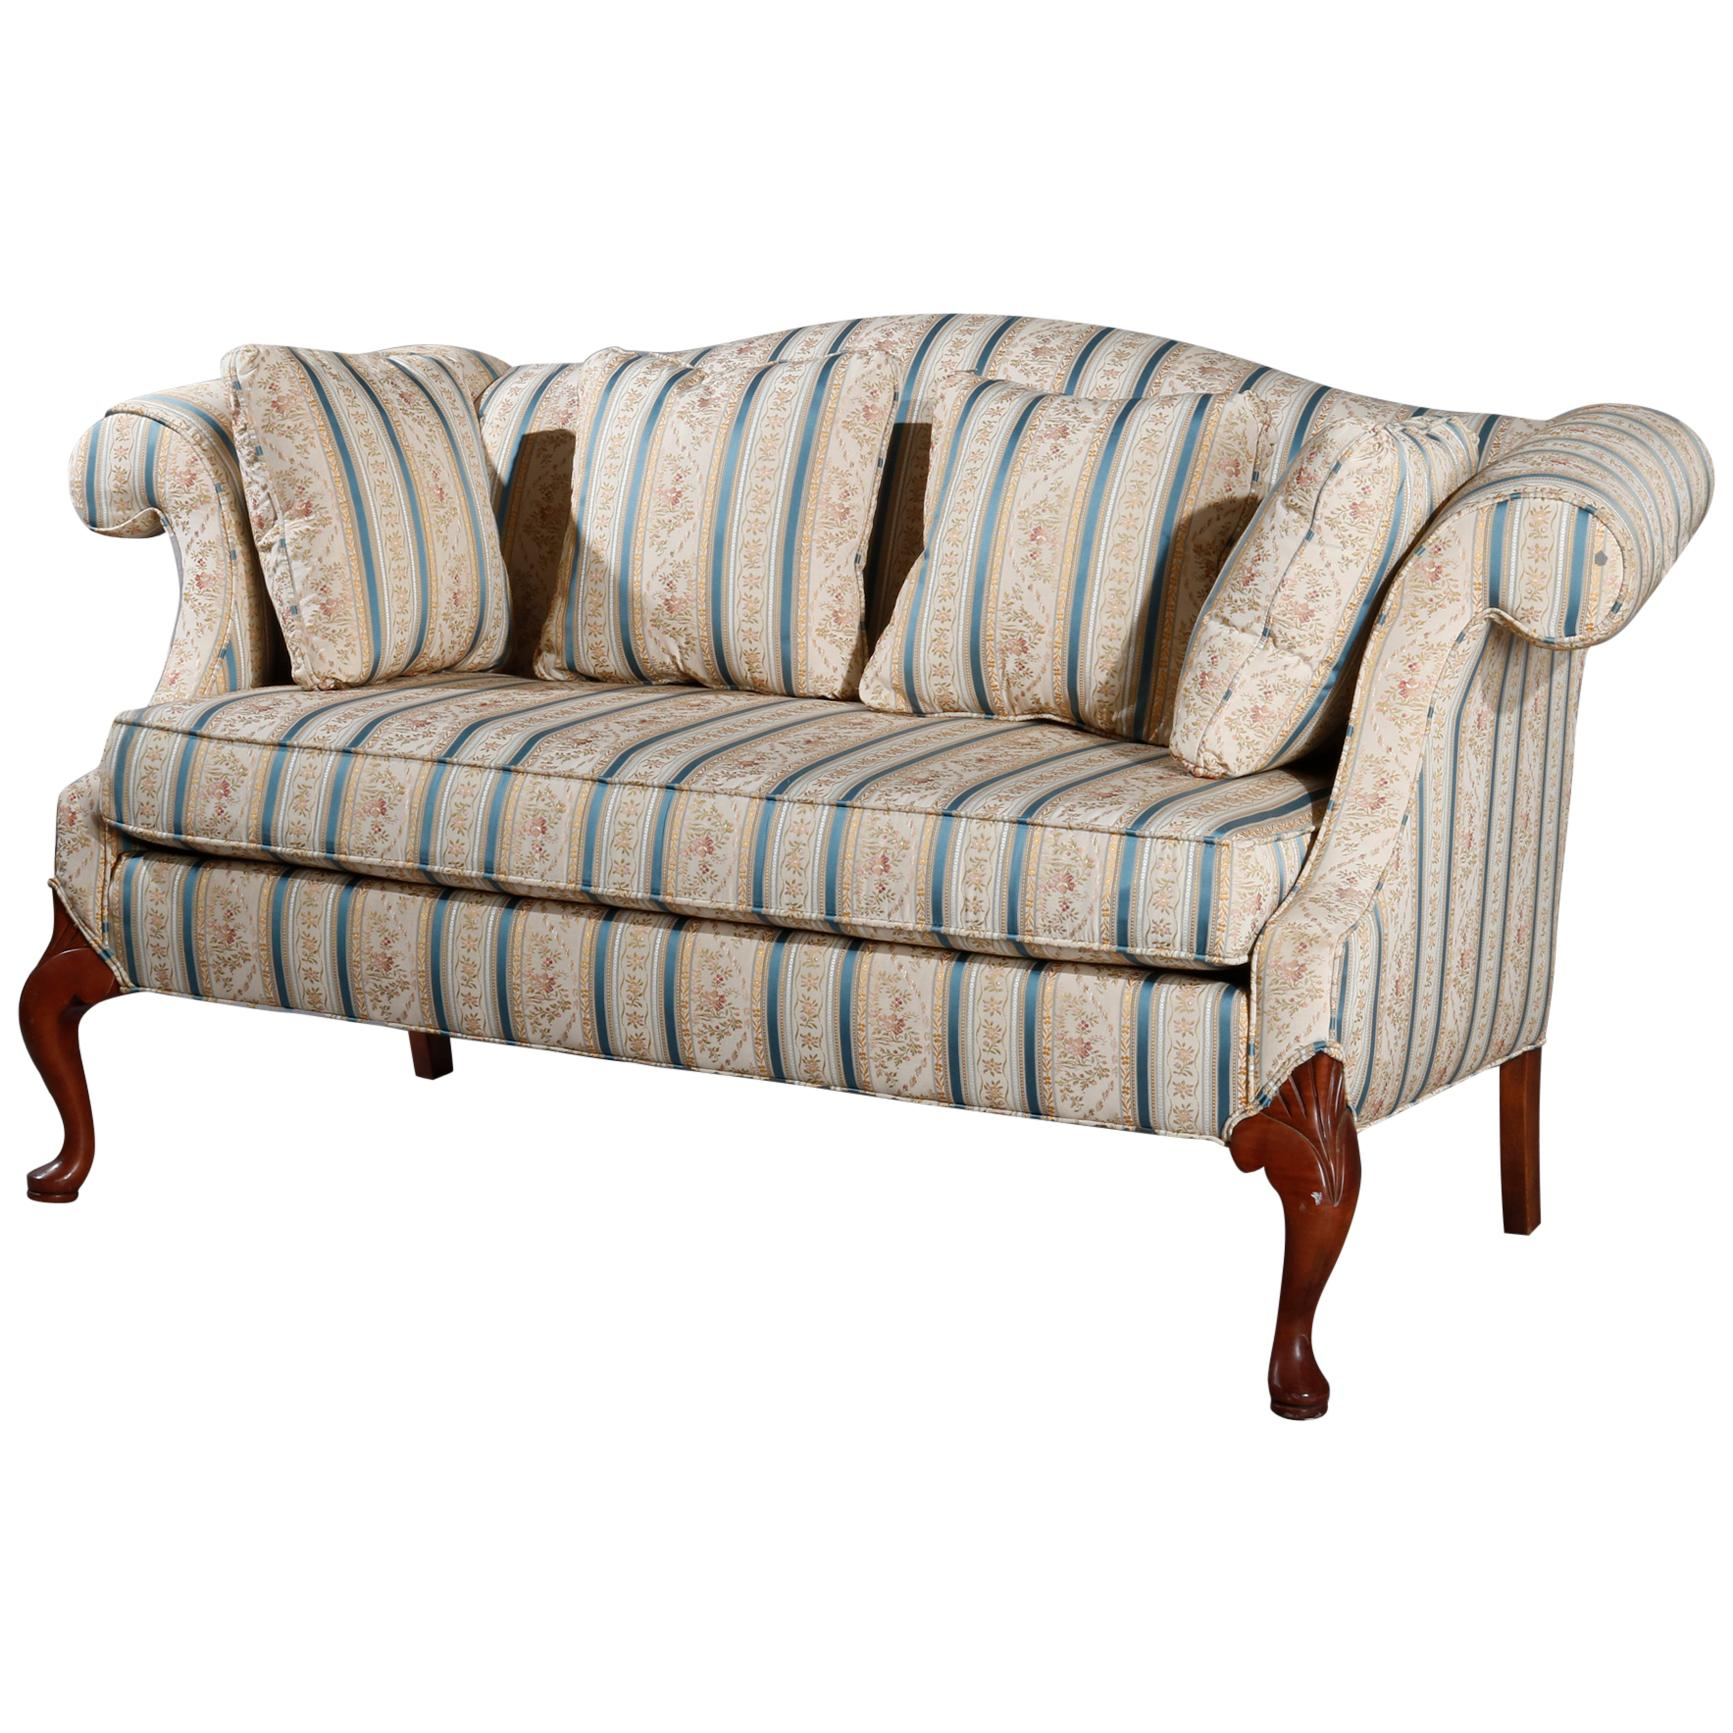 Antique Hickory Furniture Company Queen Anne Mahogany Settee, 20th Century